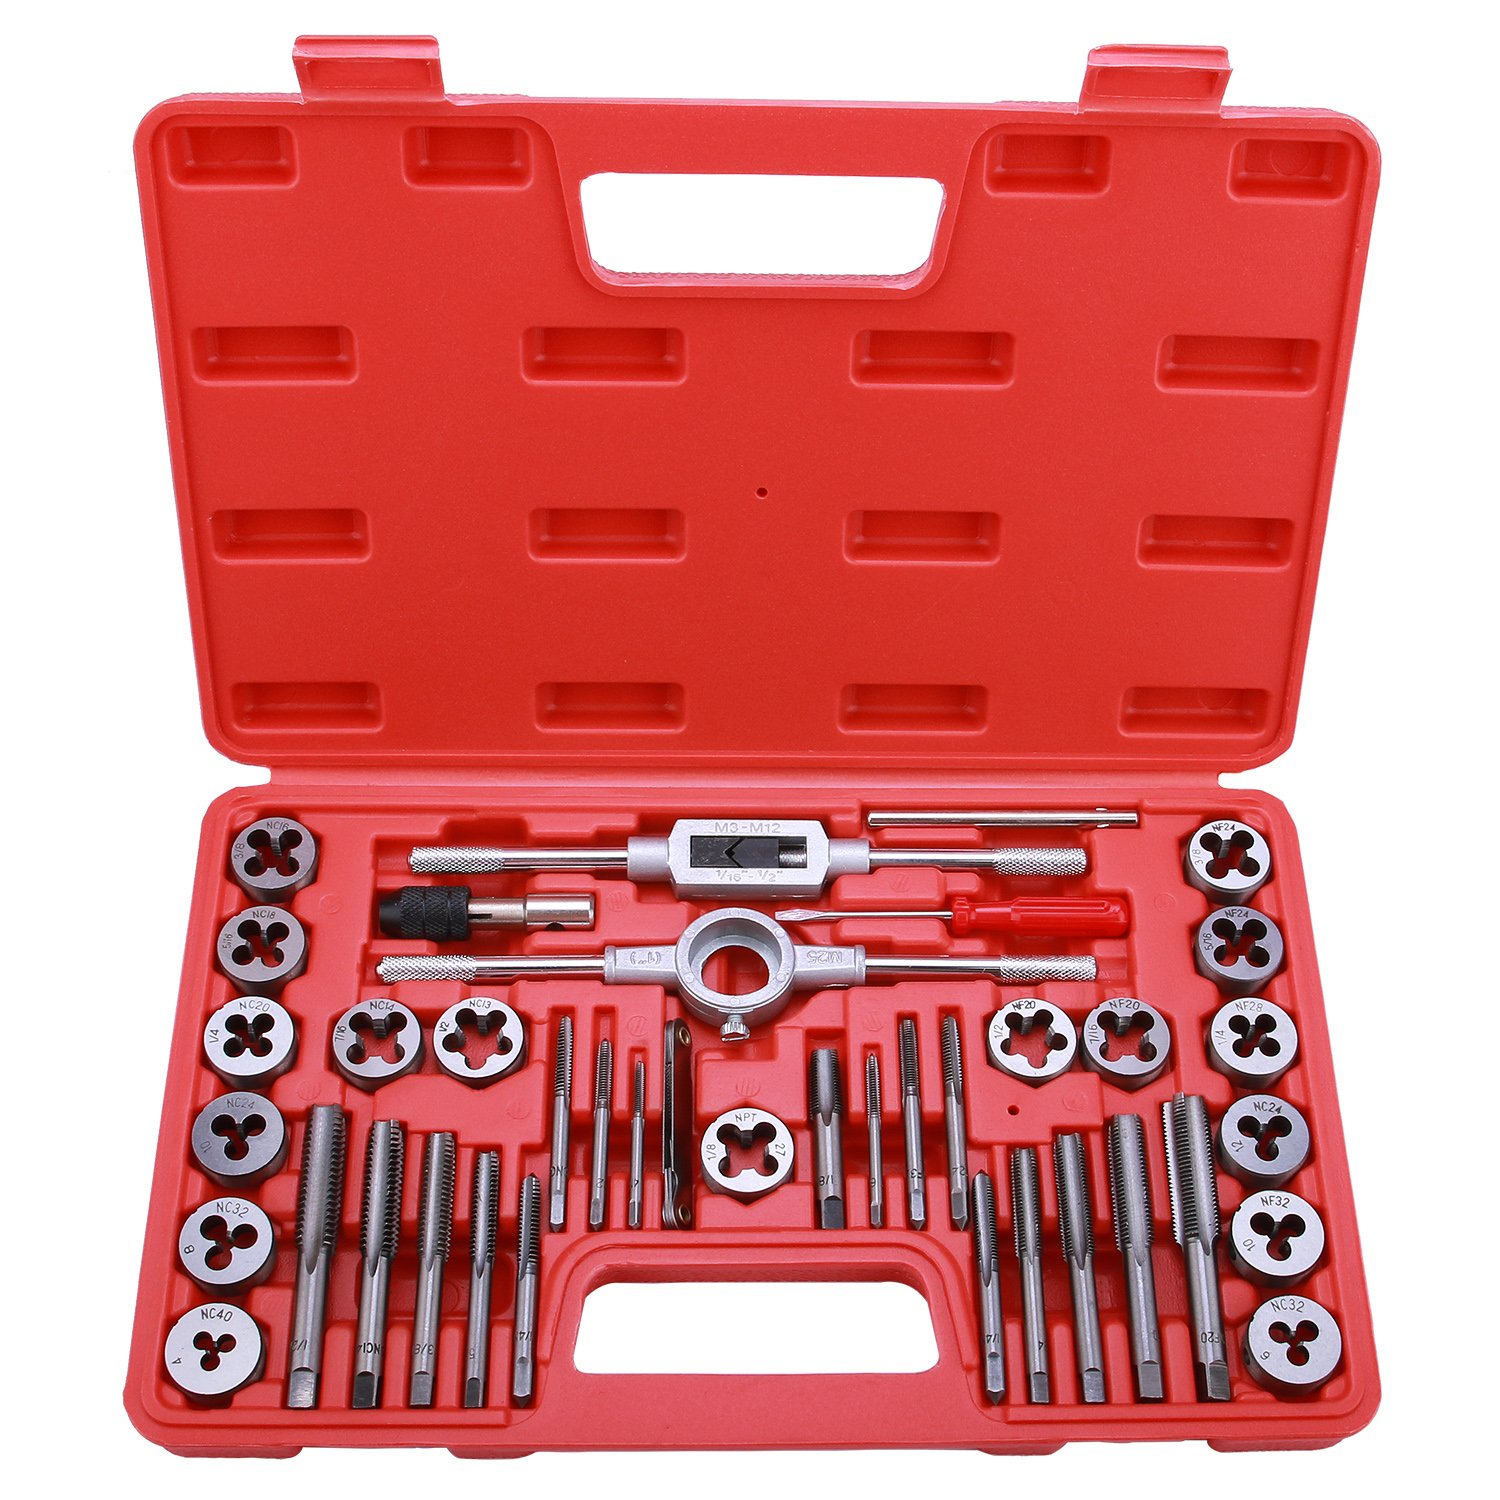 Best Choice 40-Piece Tap and Die Set - SAE Inch Sizes | Essential Threading Tool with Storage Case by EFFICERE